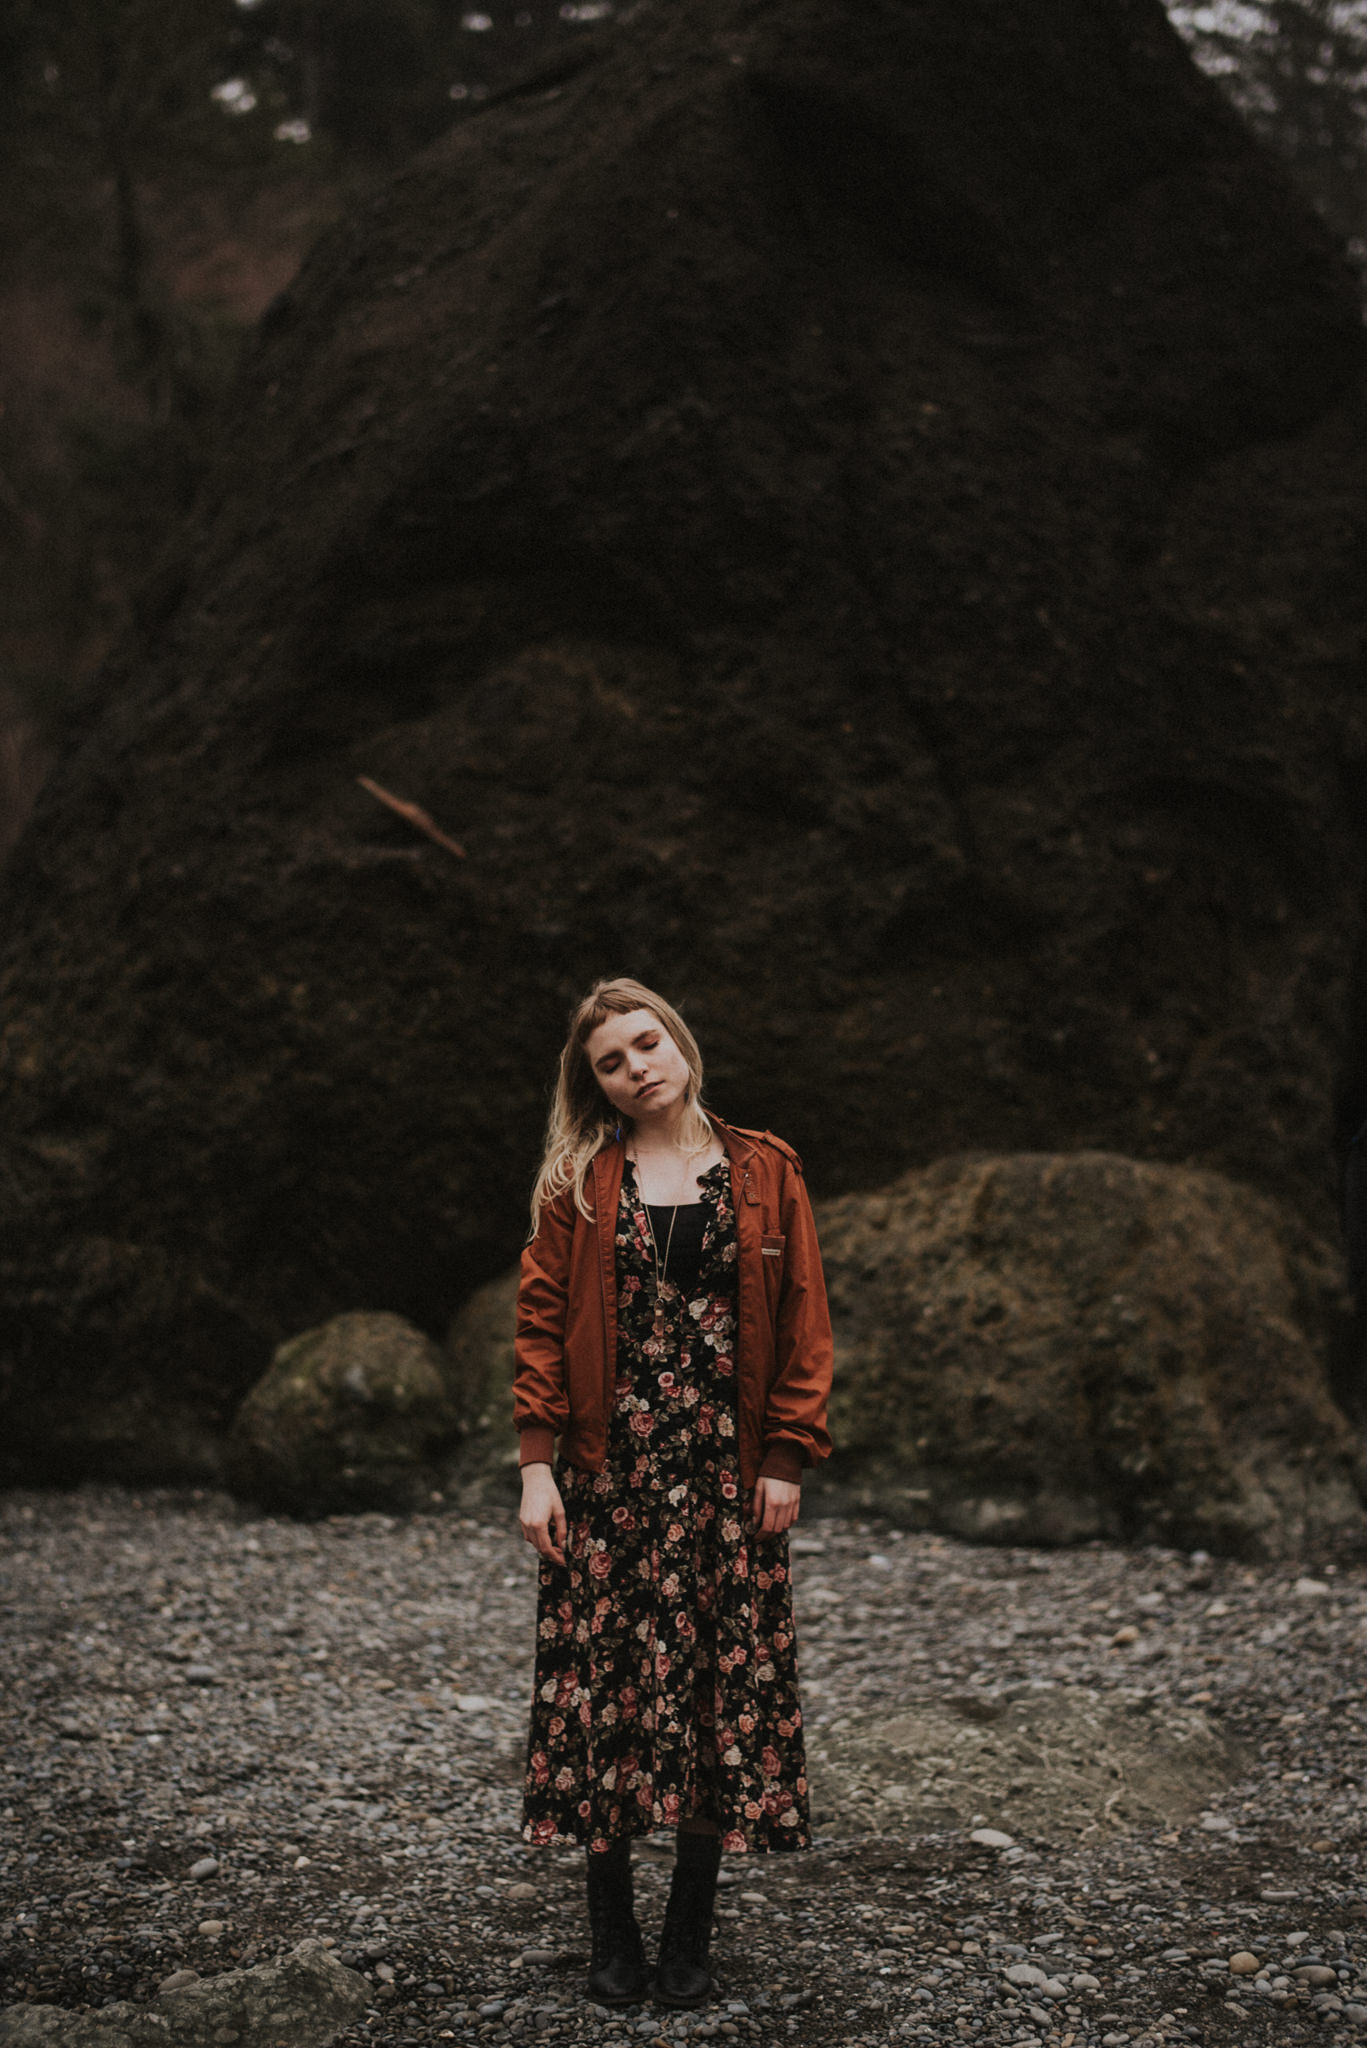 Ruby Beach Portraits